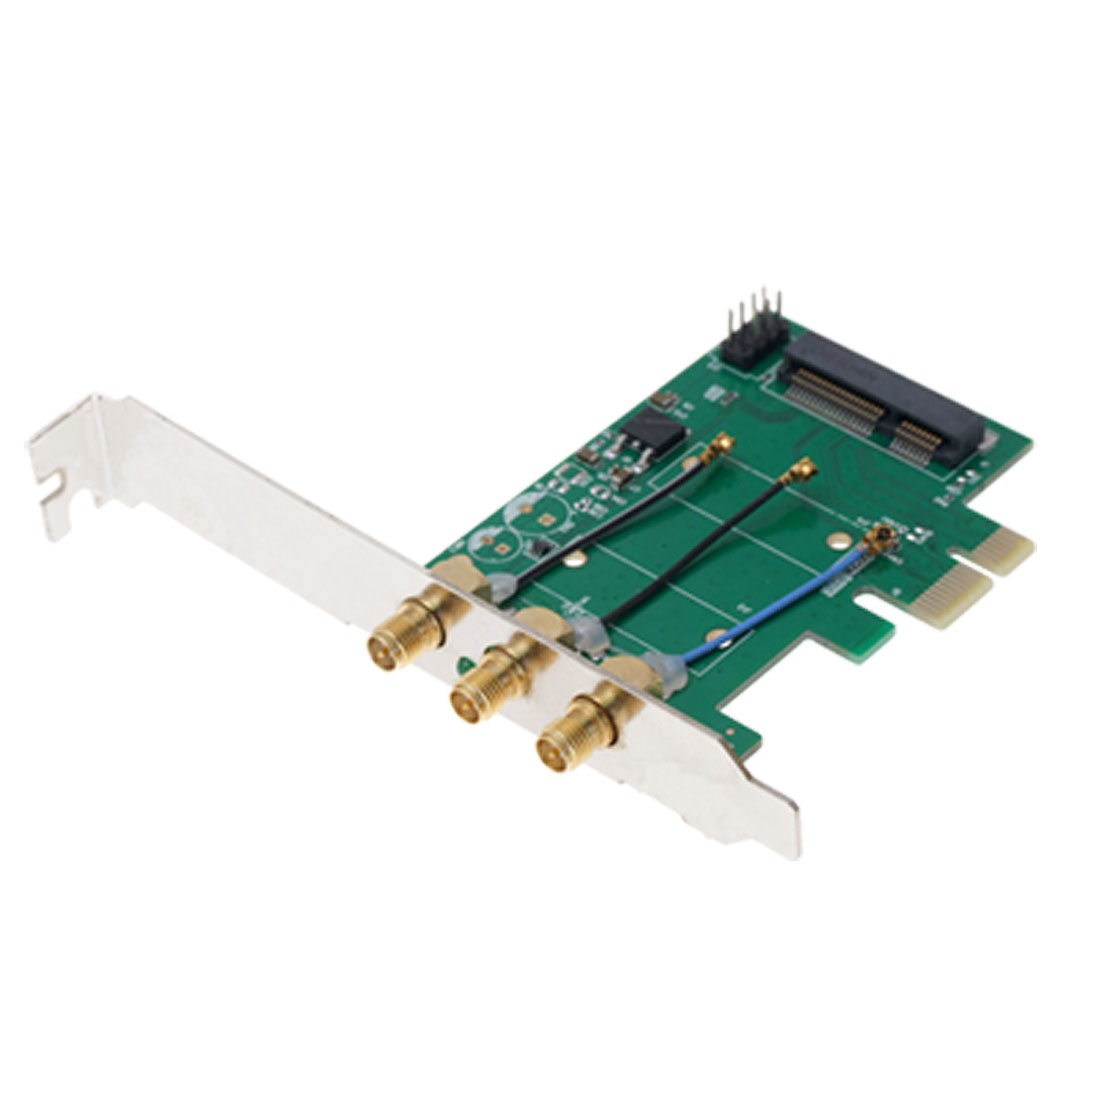 Mini PCI-E to PCI-E adapter Card Networking for PC